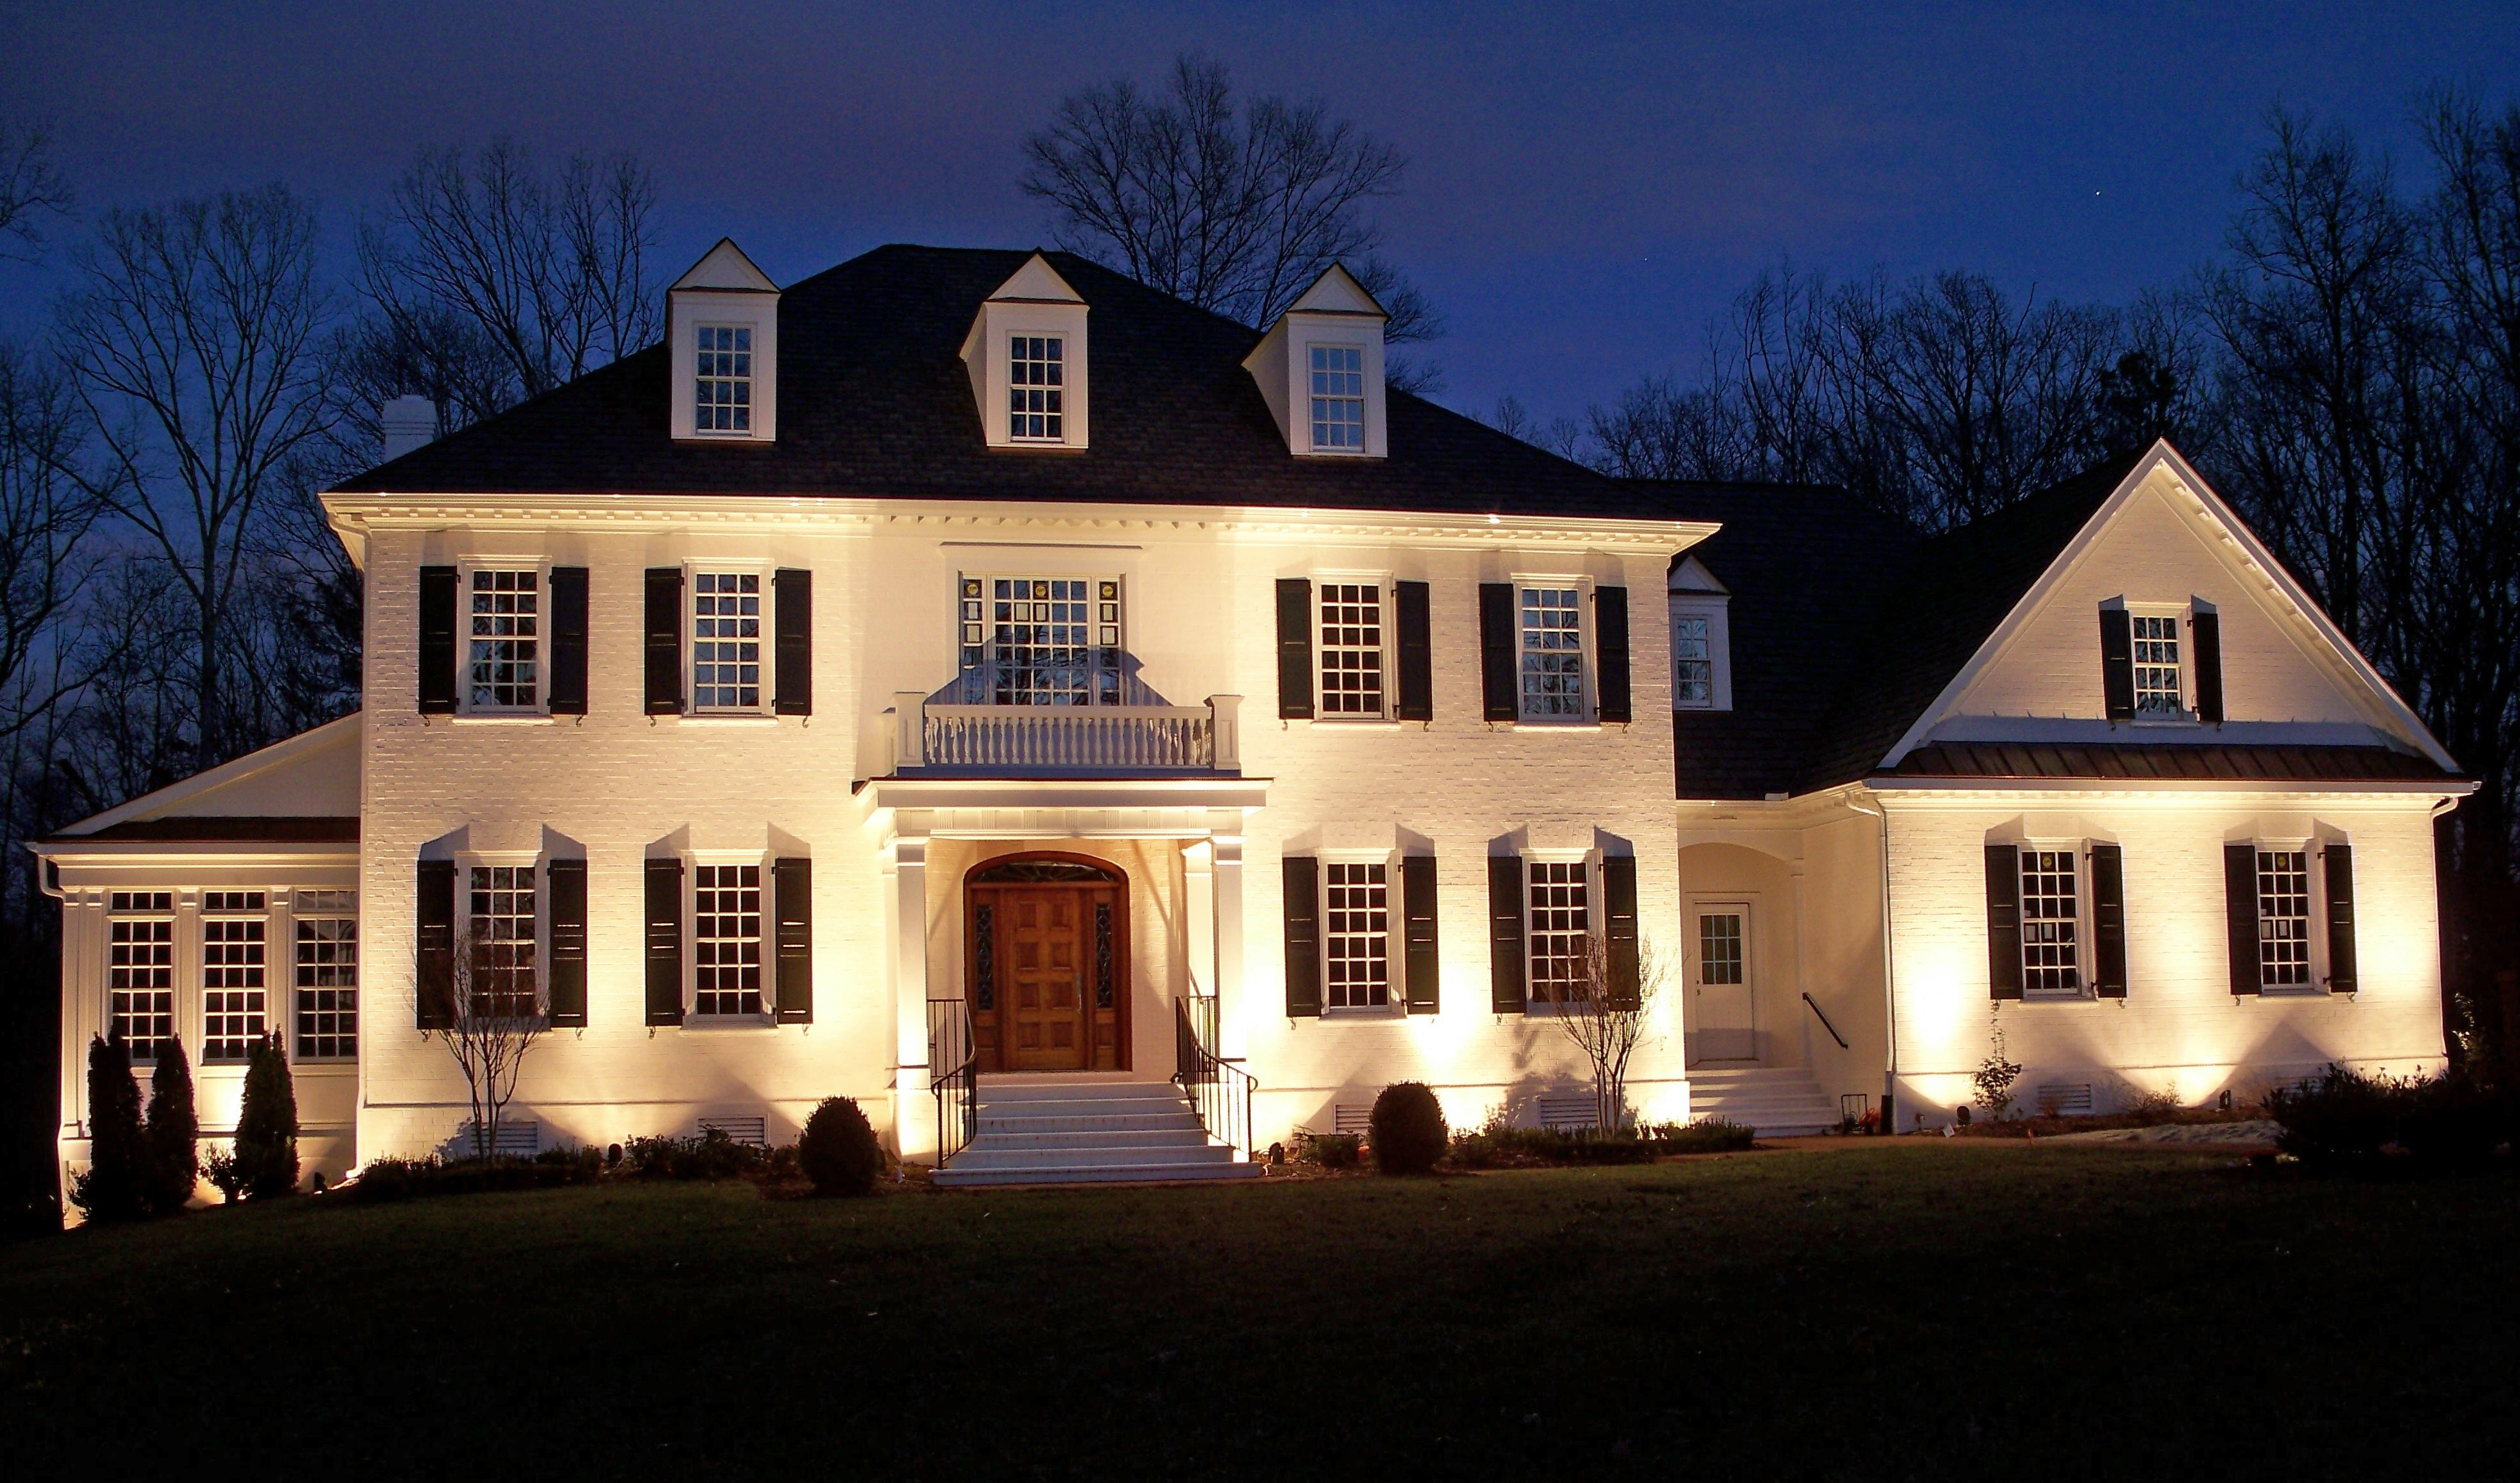 Outdoor House Lights - Outdoor Lighting Ideas within Outdoor Lanterns For House (Image 11 of 20)